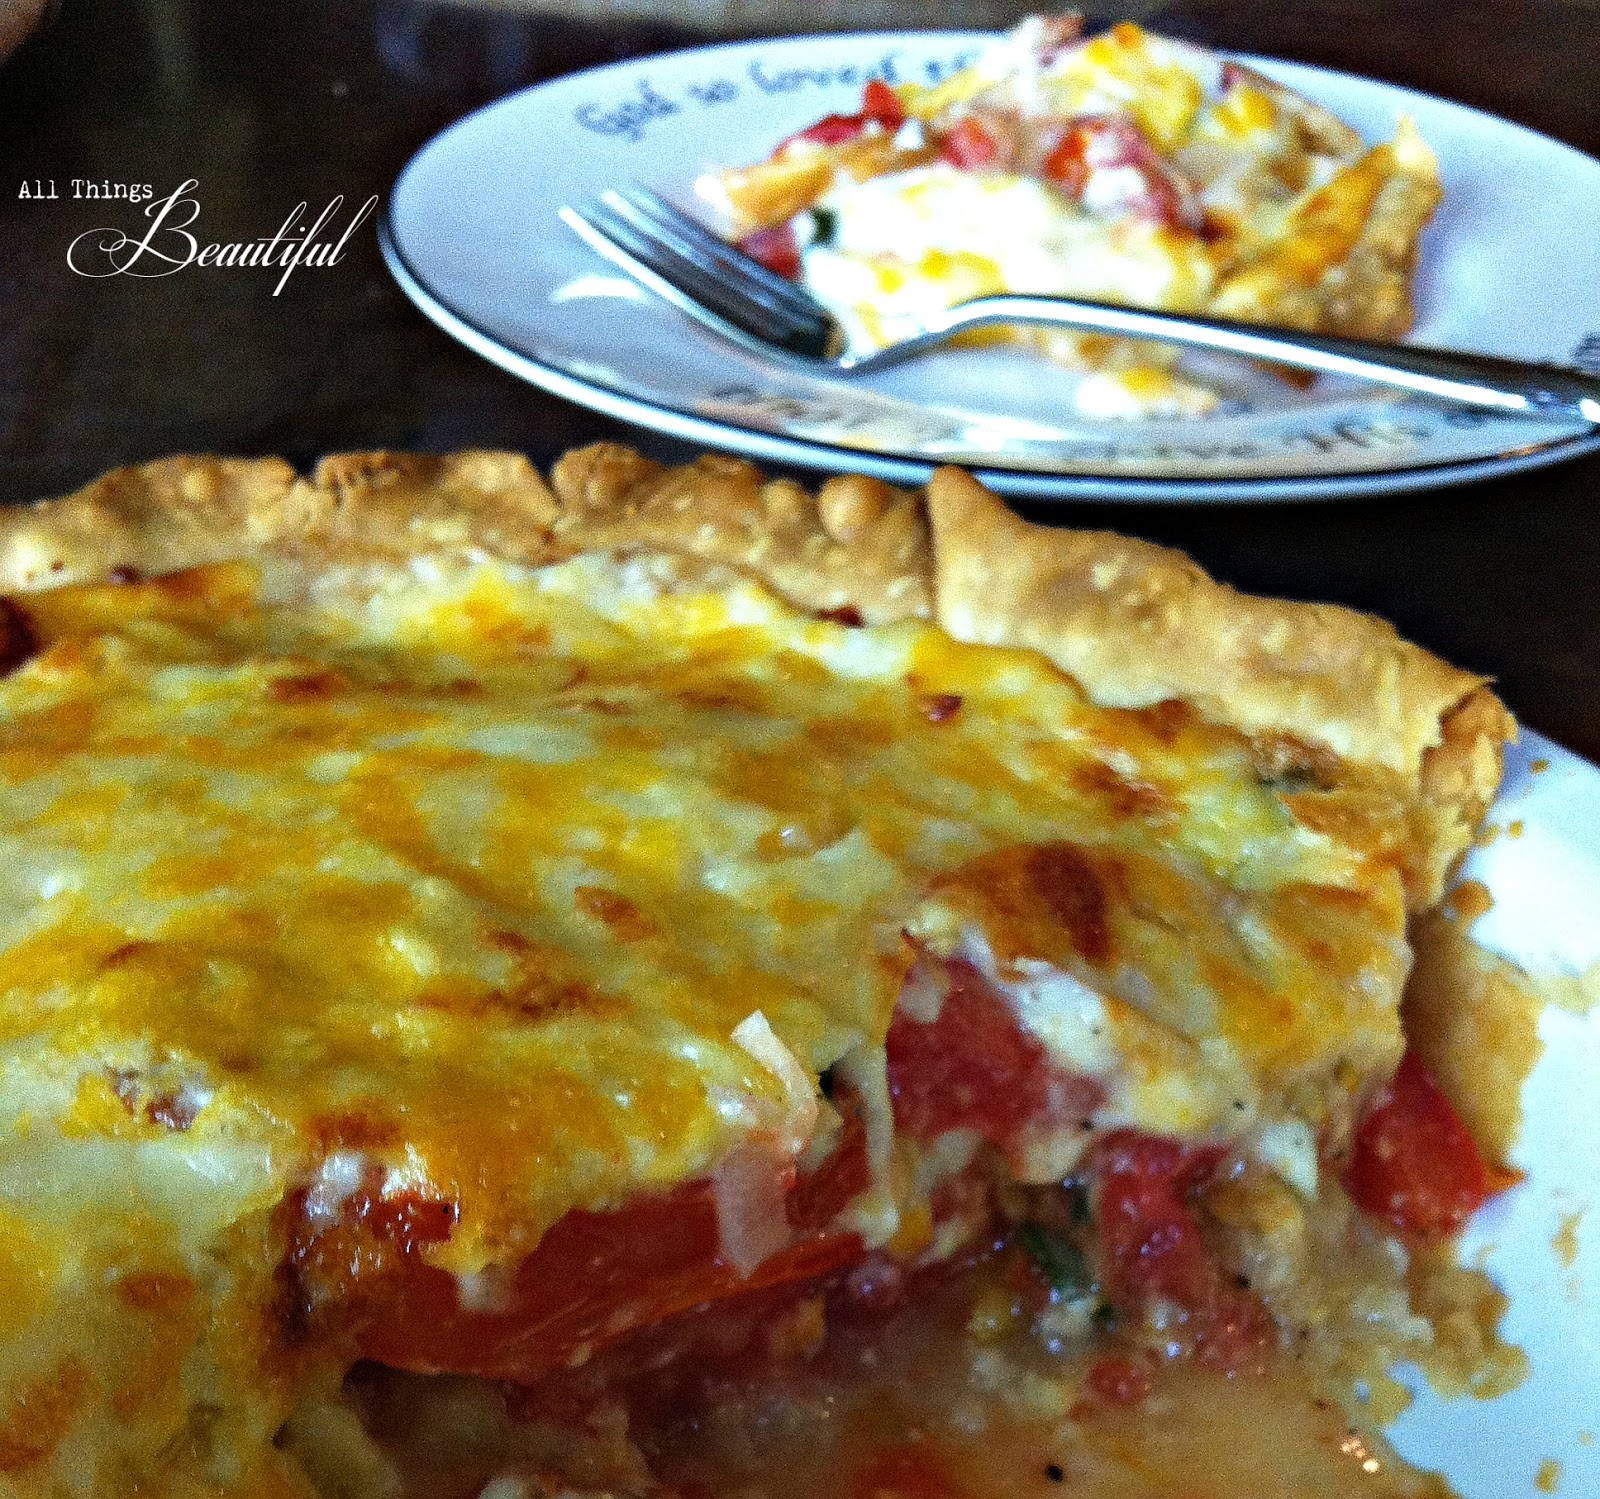 All Things Beautiful: {Tomato Pie} ain't no dessert